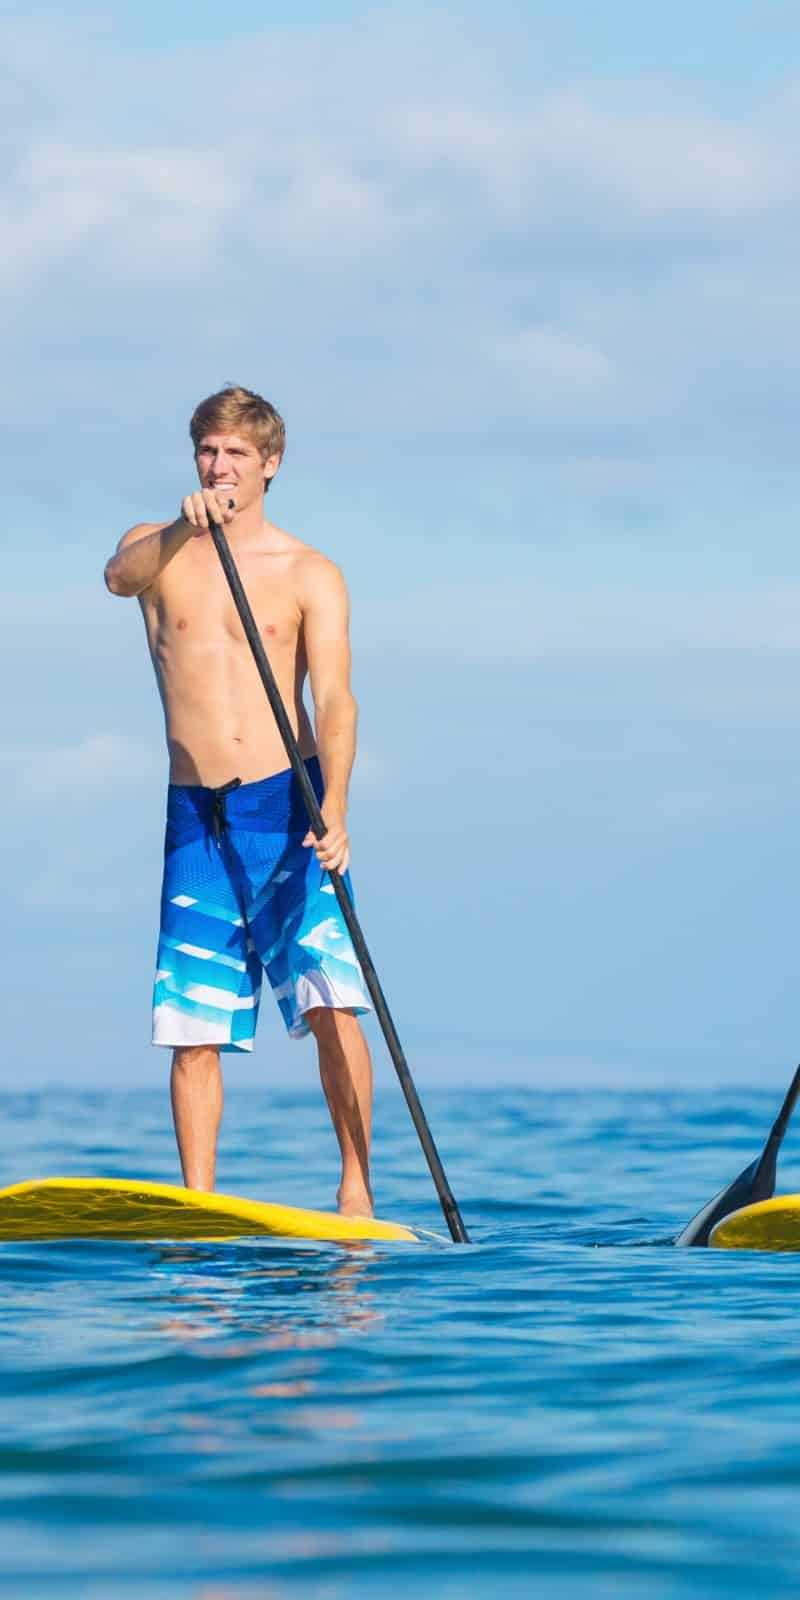 Ocean stand up paddleboard rentals